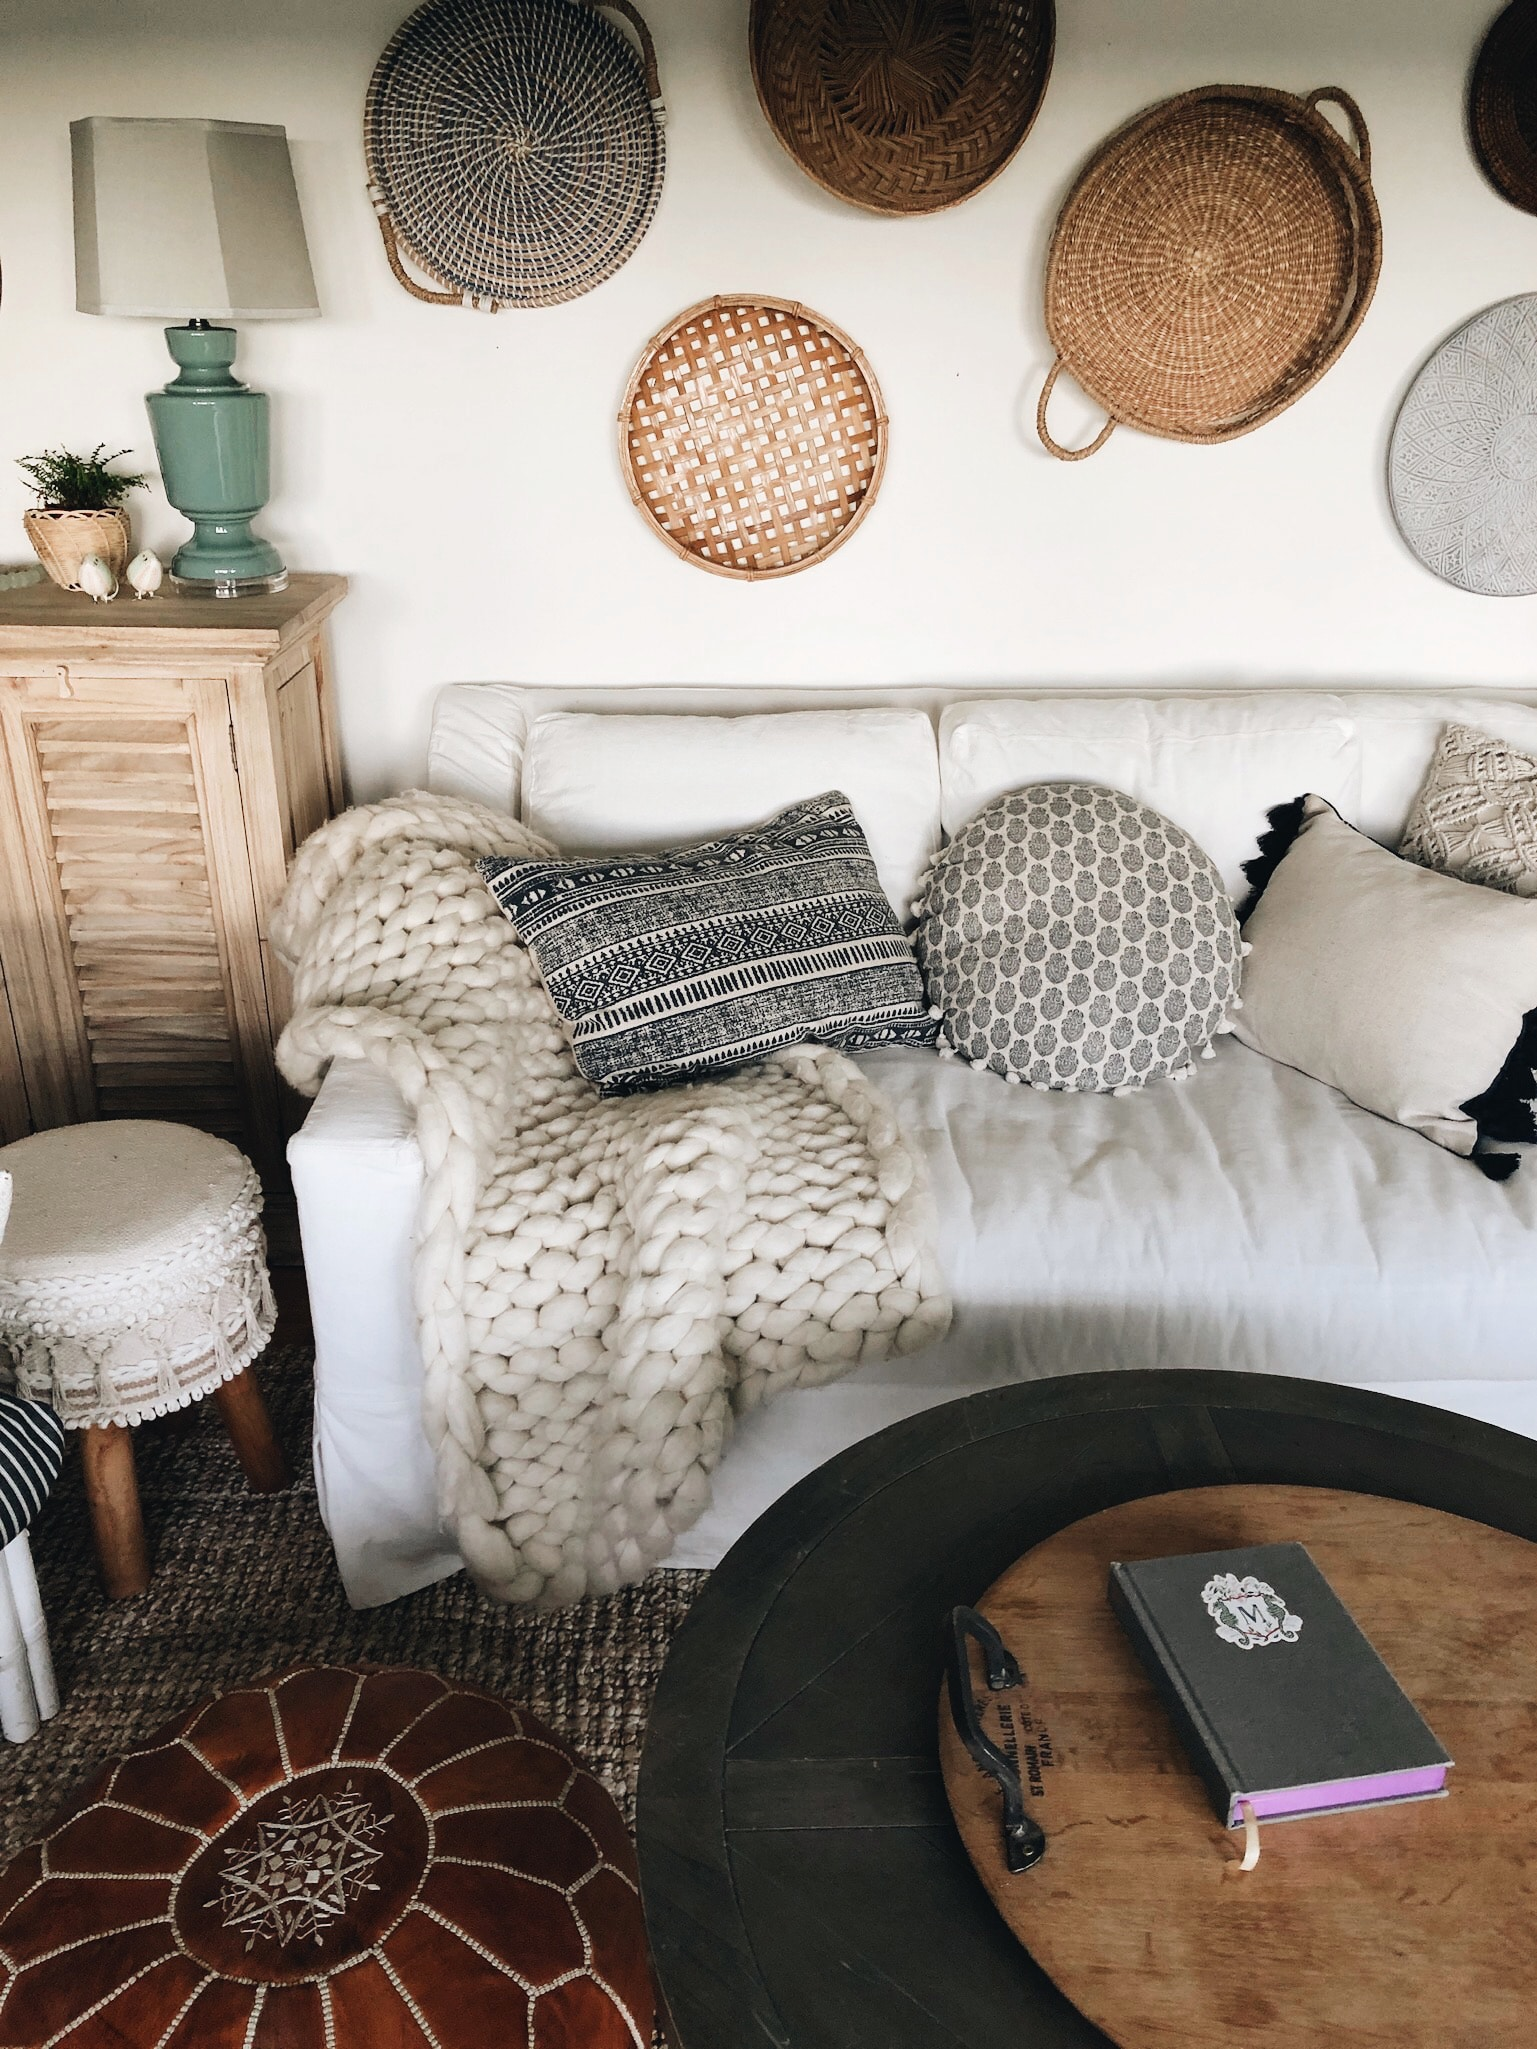 How to Make Your Home Feel Warm & Cozy (Top Tips + Decor Sale!)